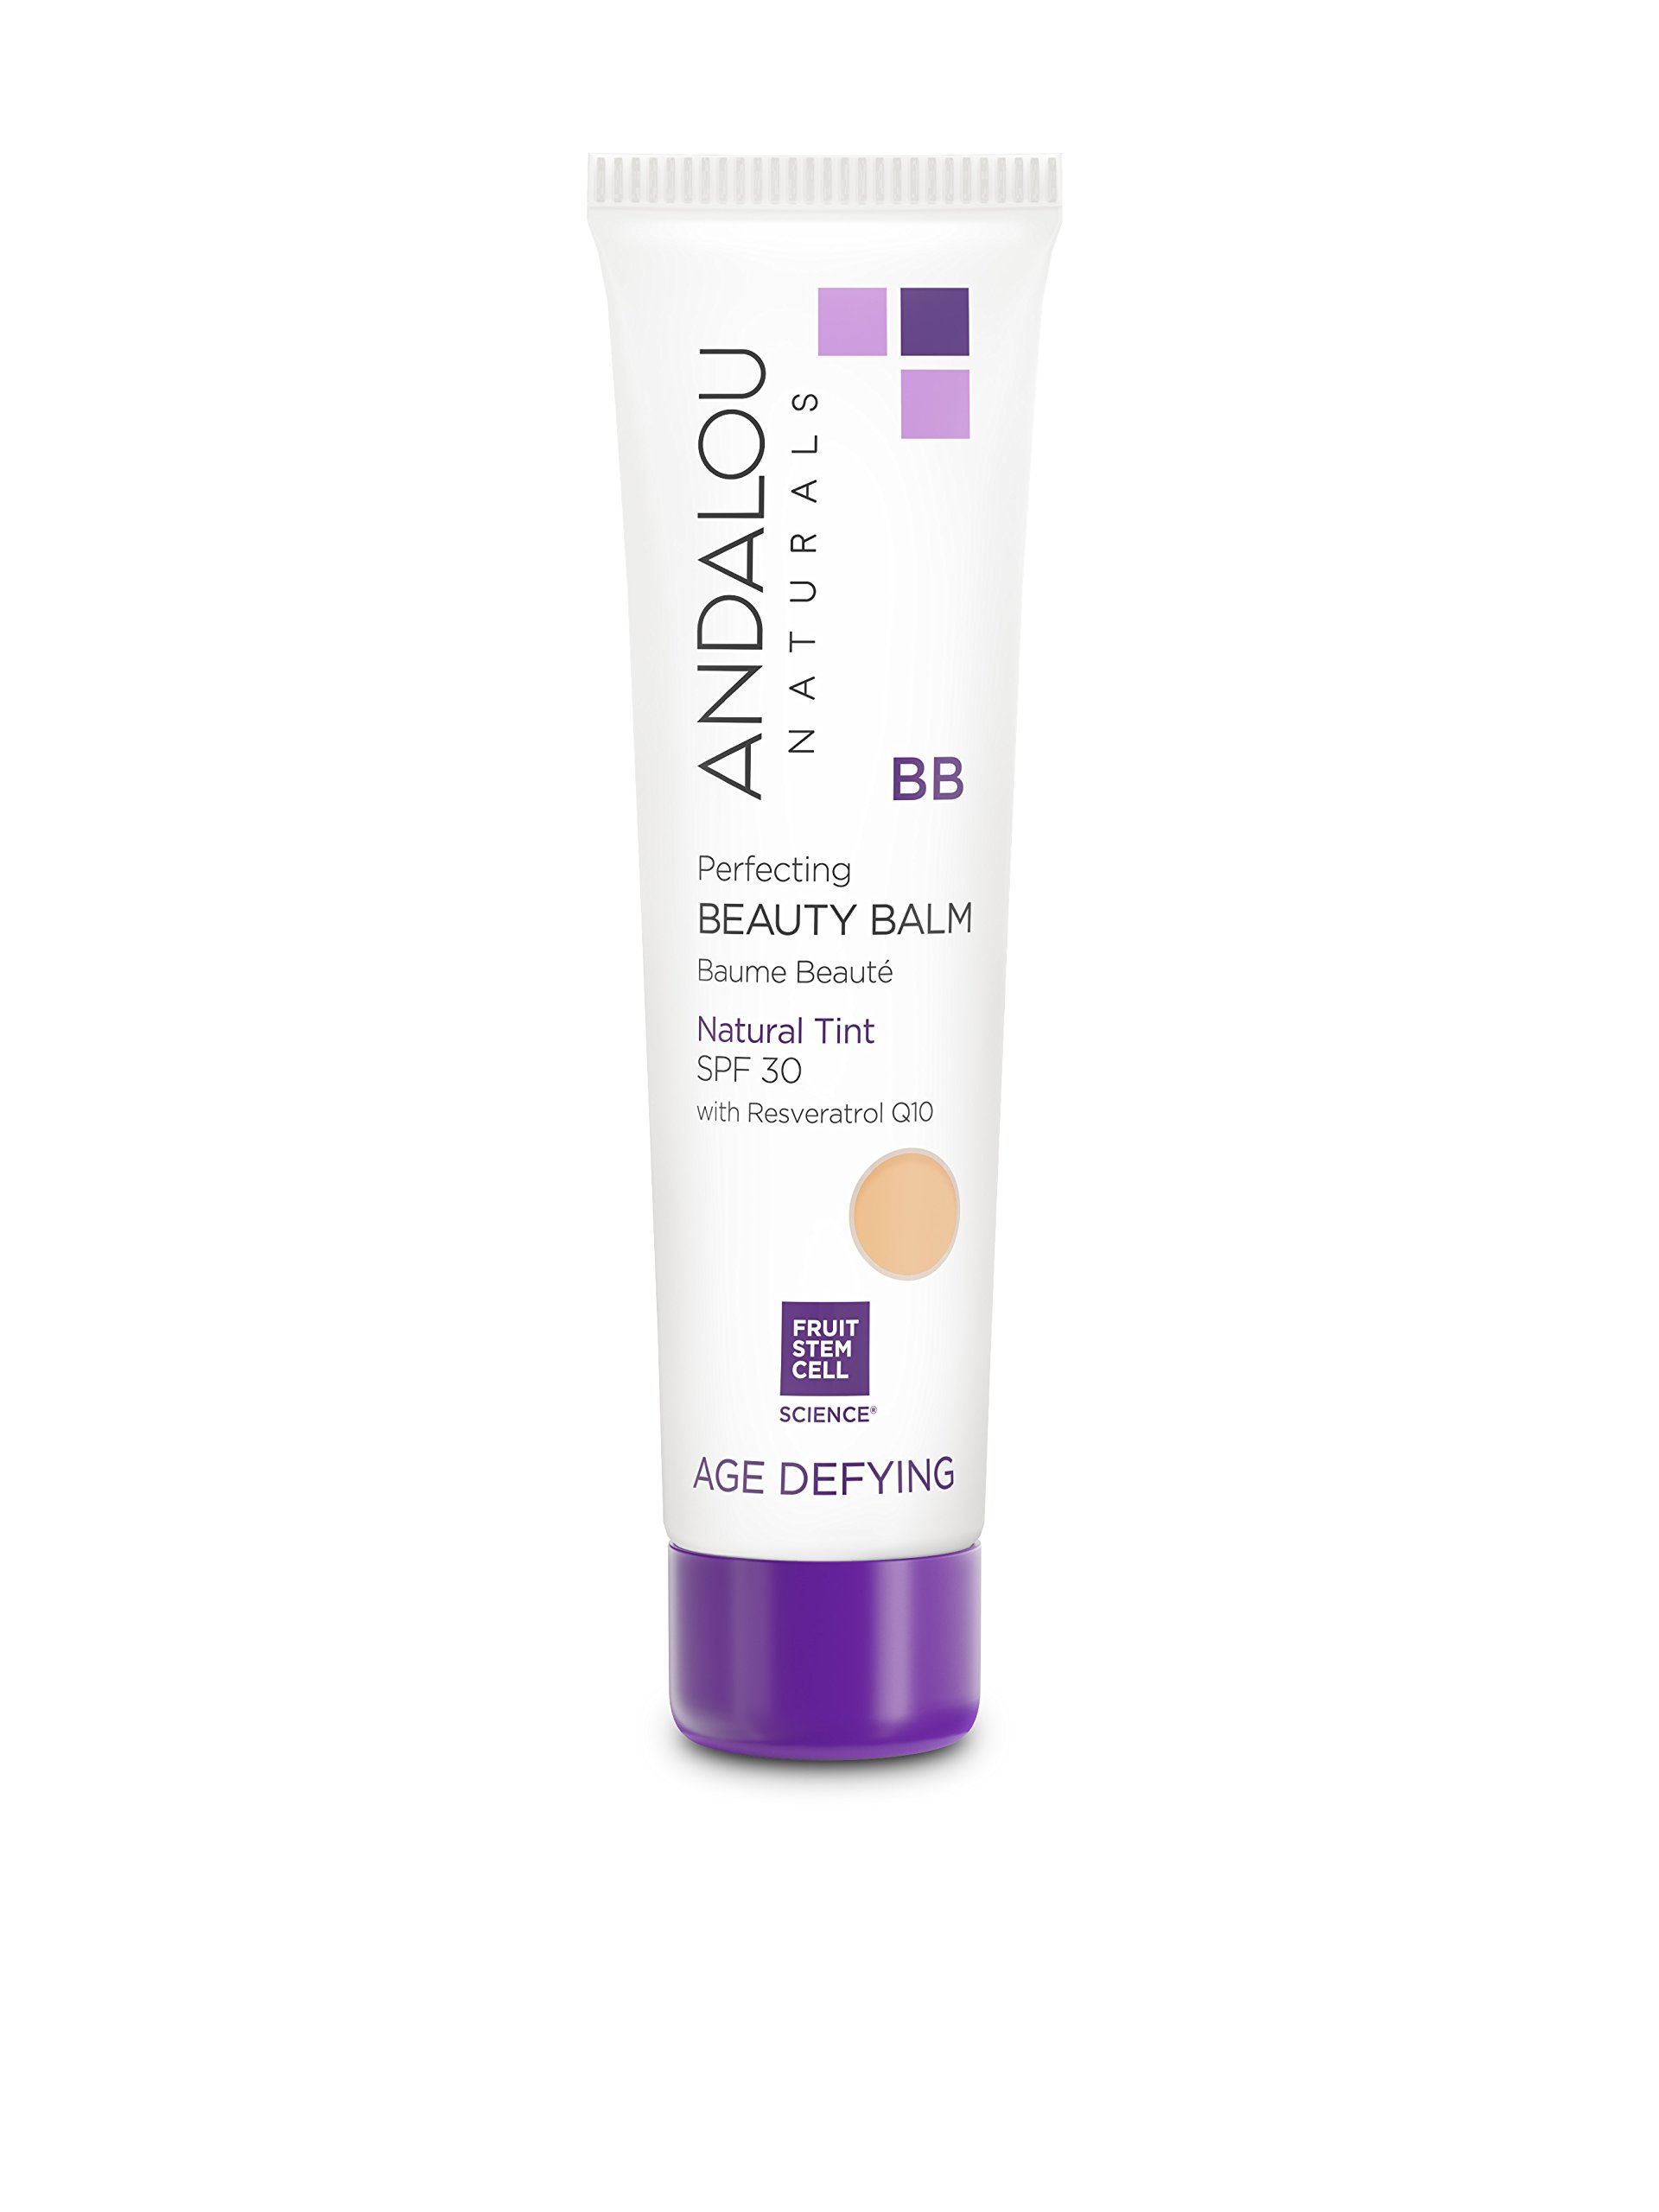 Andalou Naturals Perfecting BB Beauty Balm Natural Tint SPF 30, 2 Ounce by Andalou Naturals (Image #3)